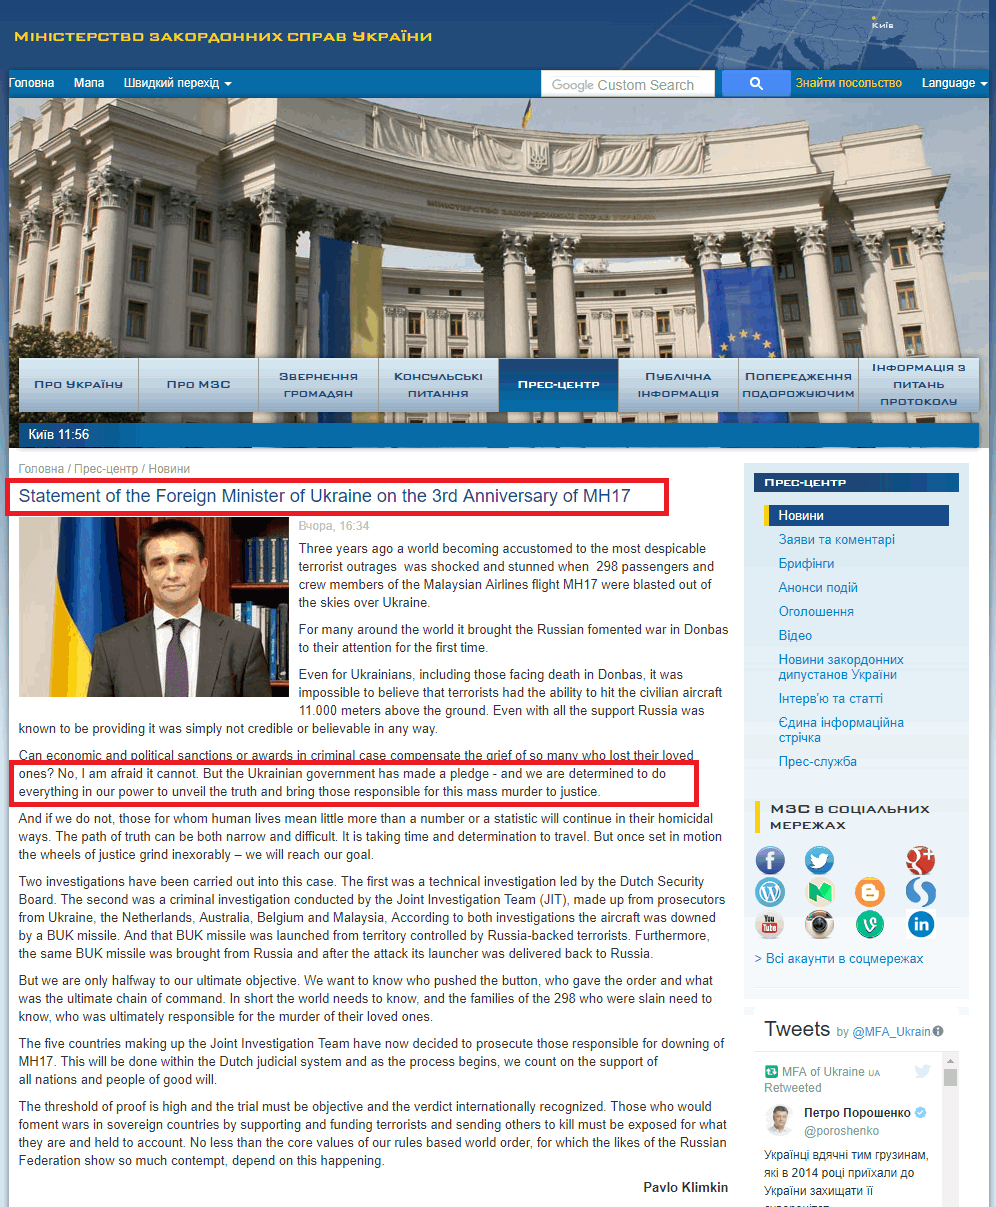 http://mfa.gov.ua/ua/press-center/news/58617-statement-of-the-foreign-minister-of-ukraine-on-the-3rd-anniversary-of-mh17